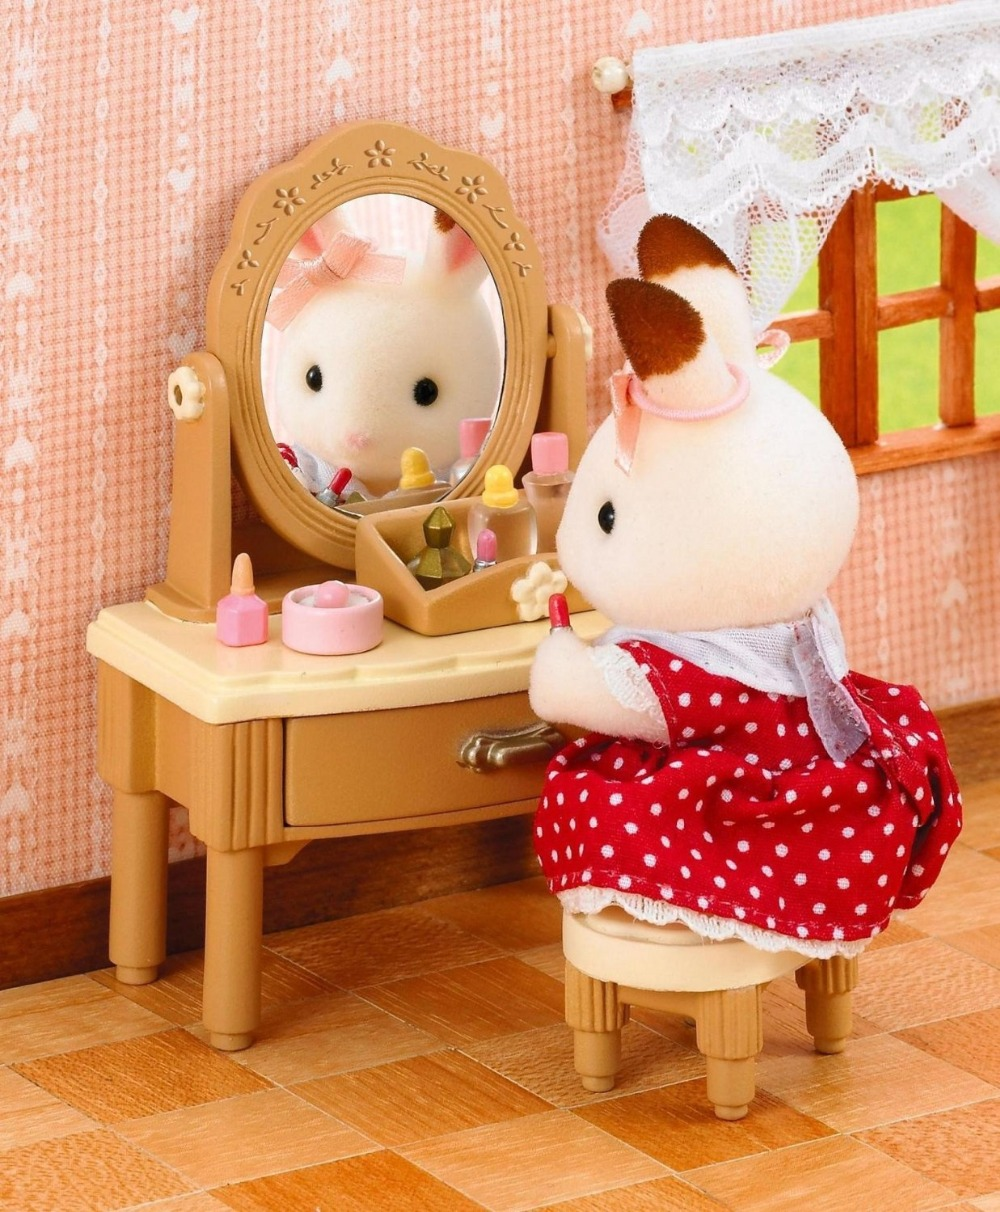 New japanese version sylvanian families dressing table for Sylvanian families beauty salon dressing table